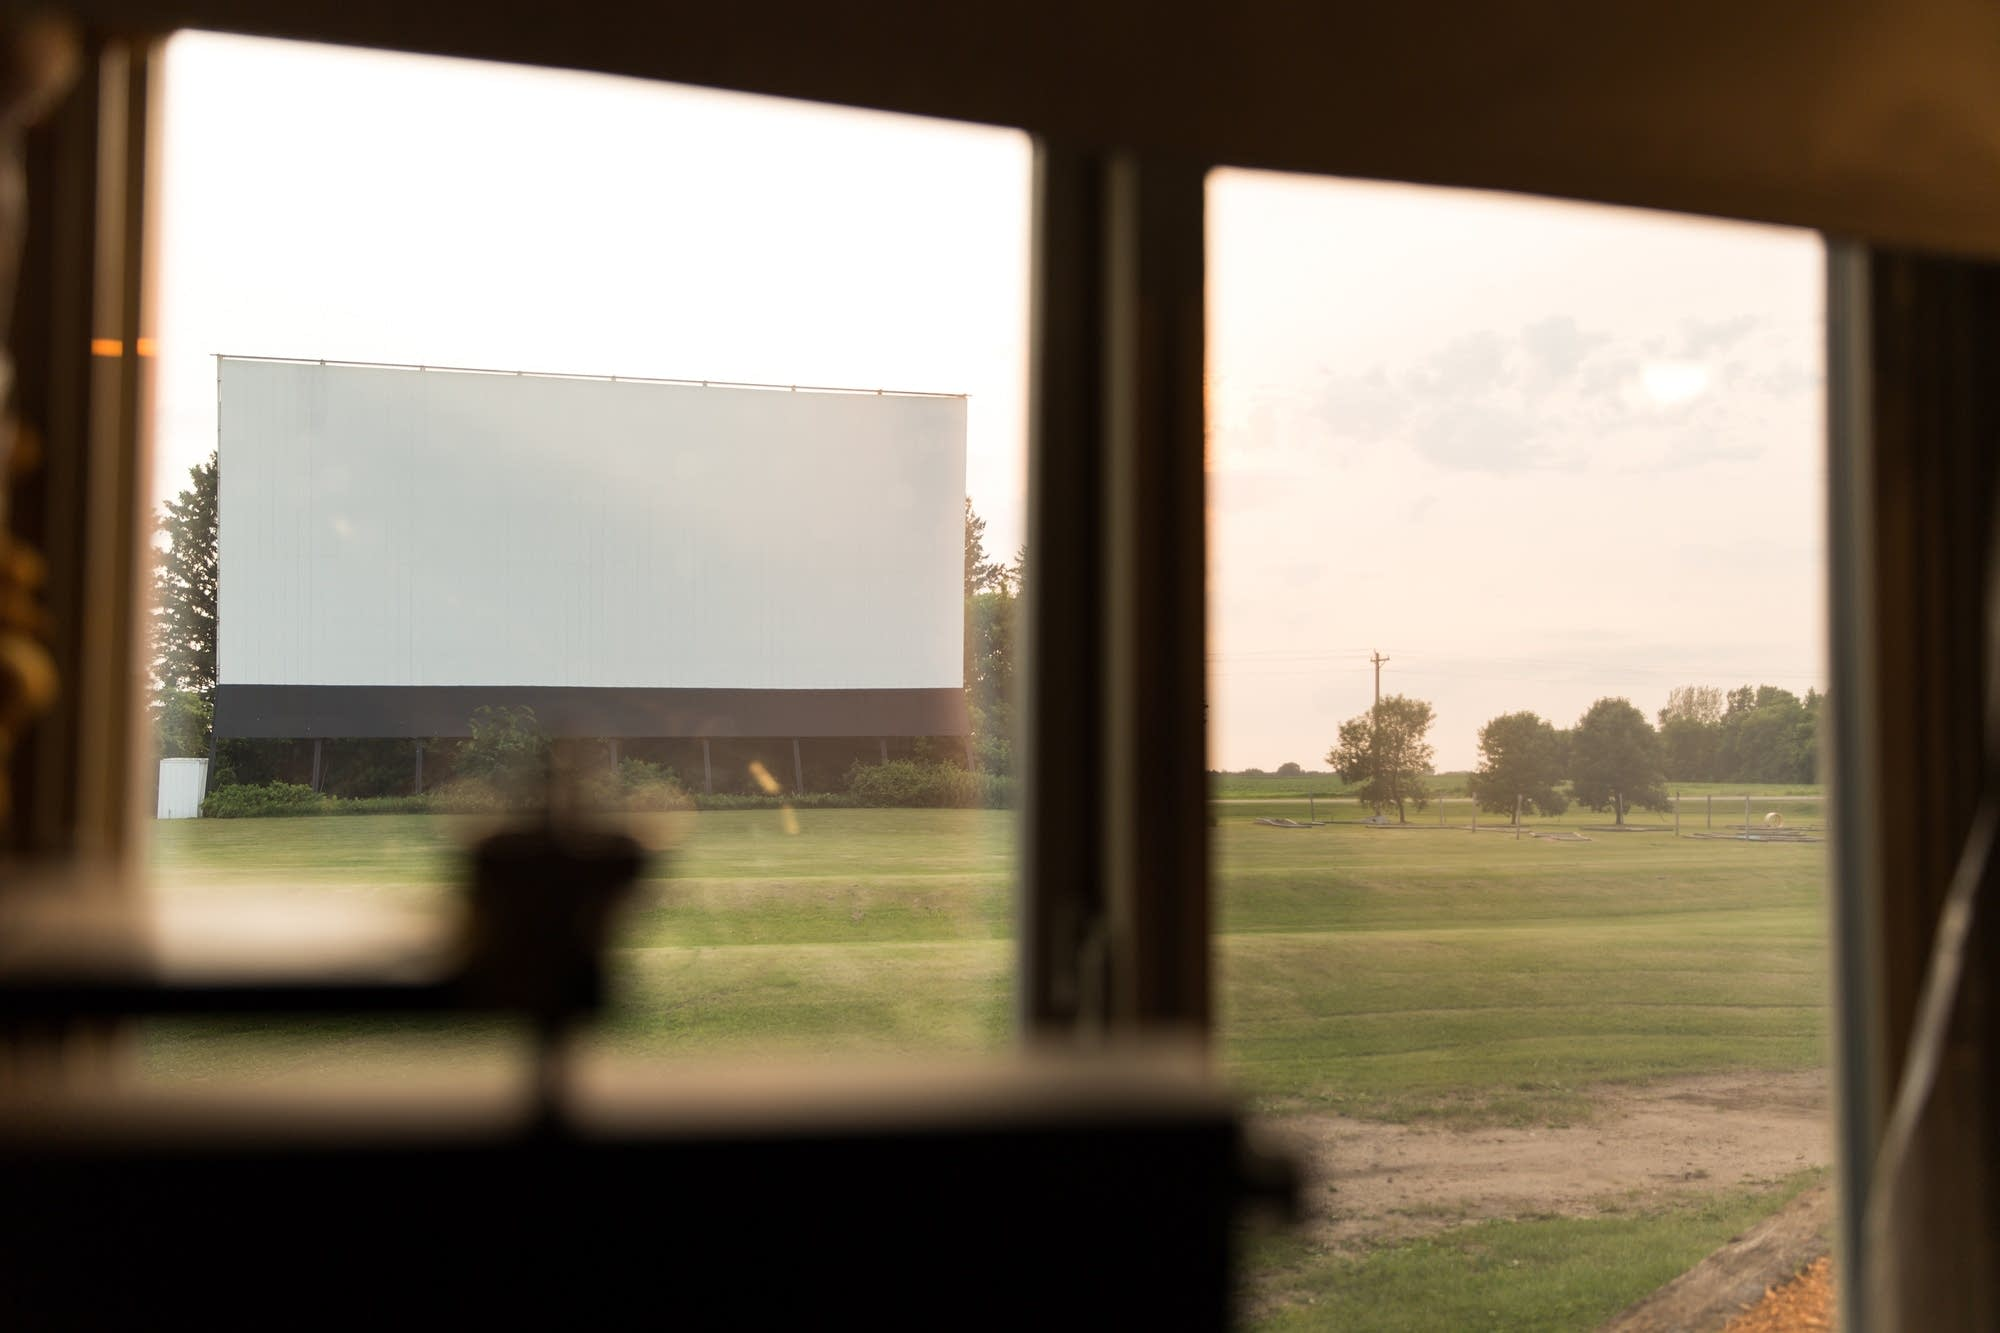 Screen one sits alongside Highway 22 in Litchfield, Minn.